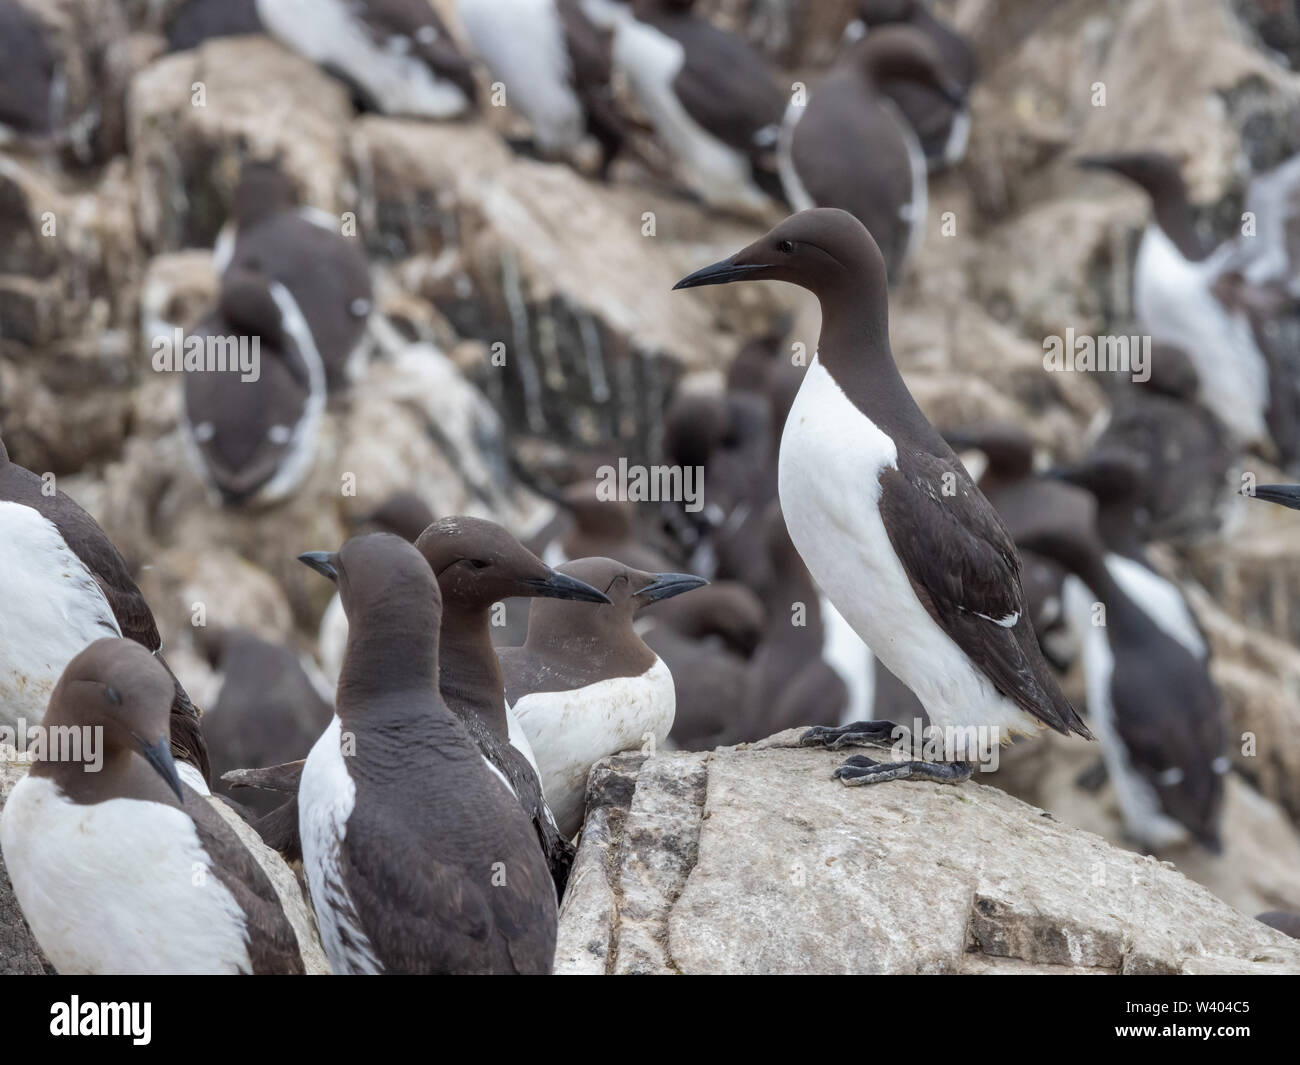 Colony of Guillemots (Uria aalge) on a rock. - Stock Image